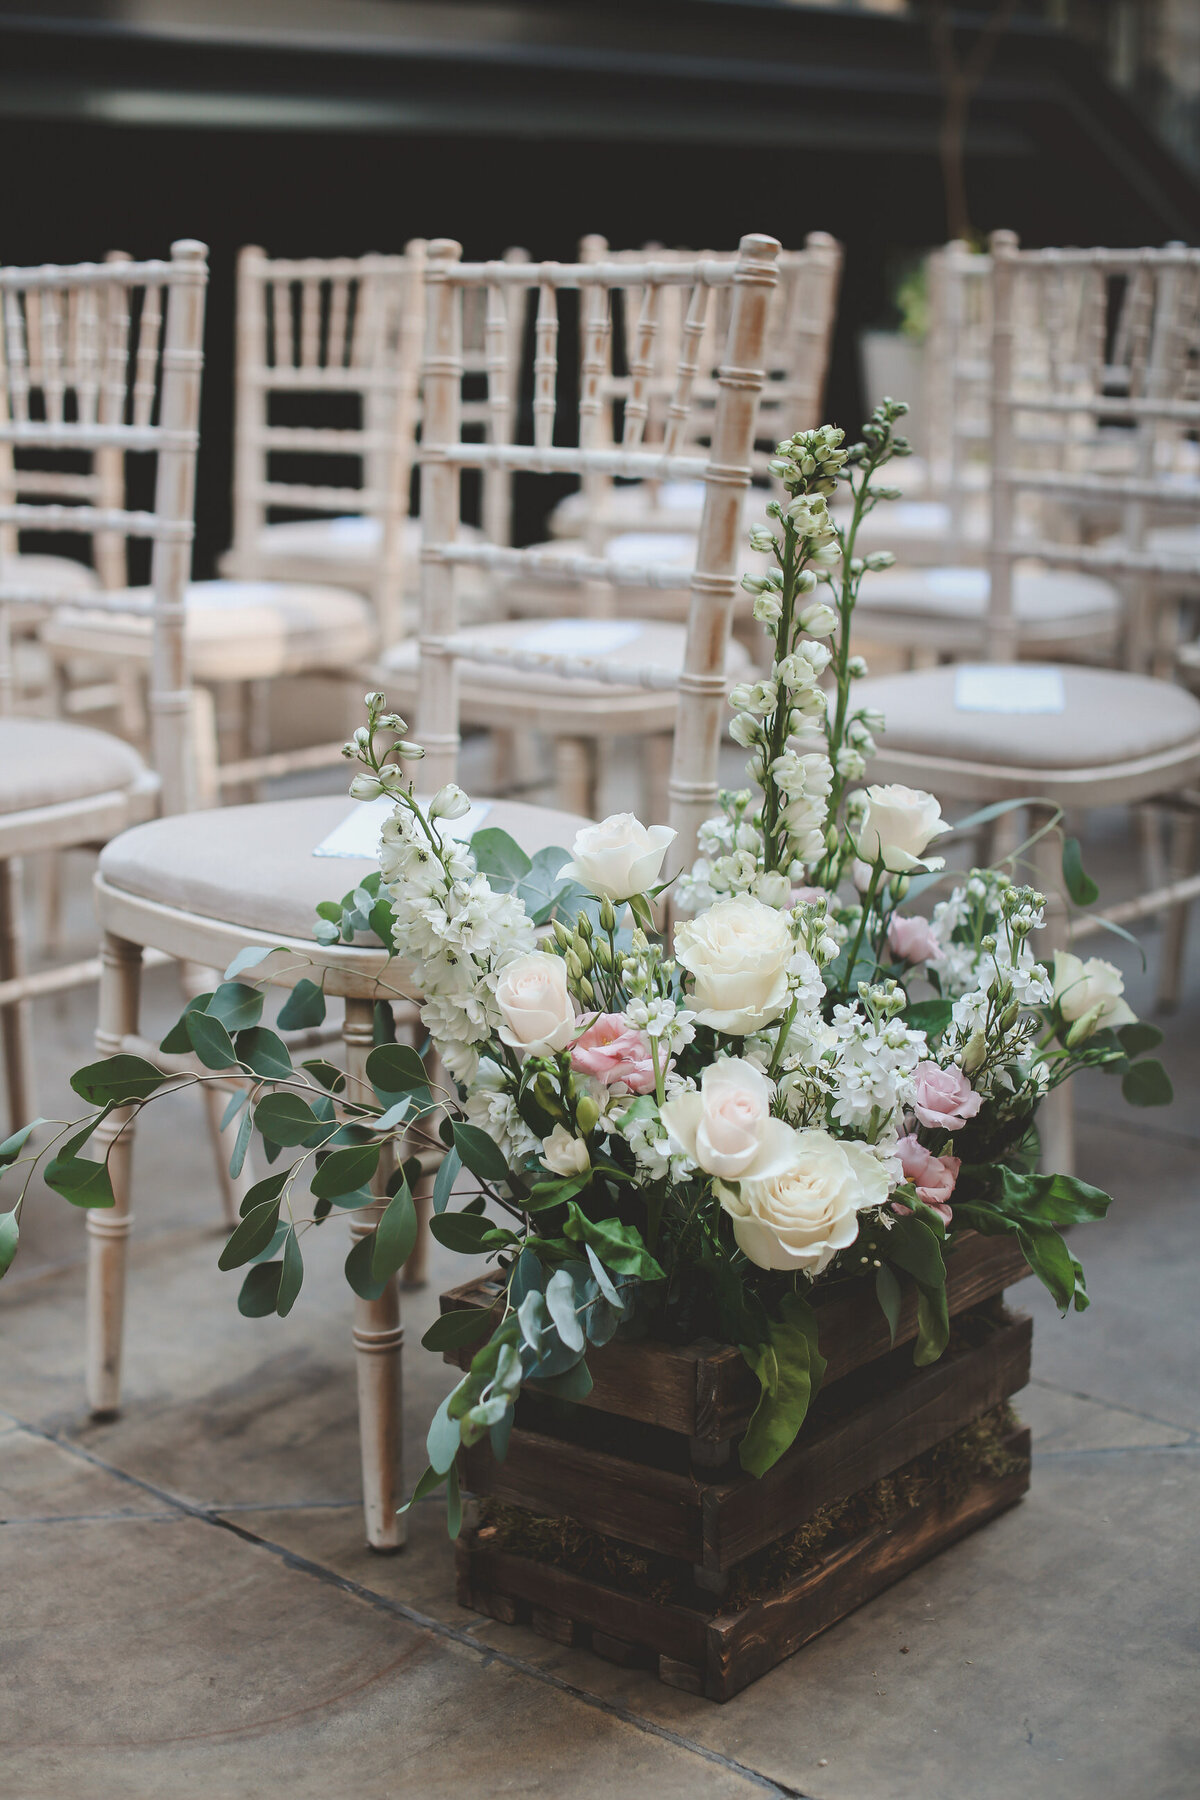 DEVONSHIRE-TERRACE-LONDON-WEDDING-PHOTOGRAPHER-0047